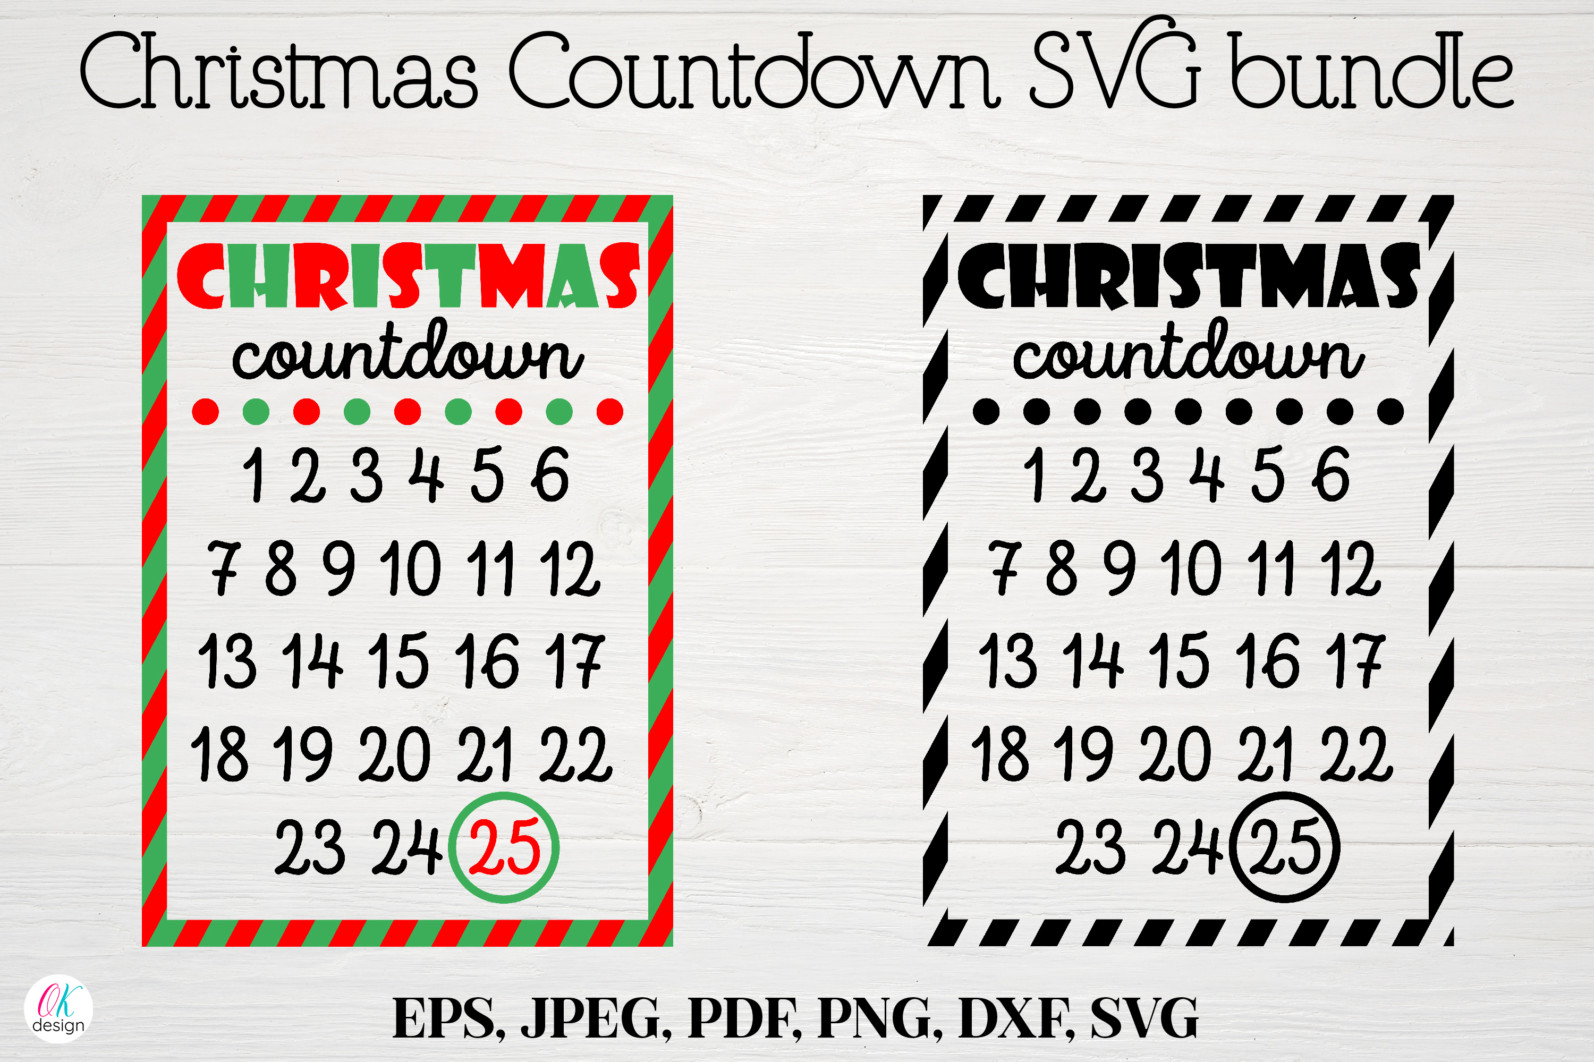 Christmas bundle Vol. 1. Christmas stickers. Christmas SVG bundle. - 5 Christmas svg Christmas countdown svg Christmas count down Christmas sign svg days until Christmas svg scaled -